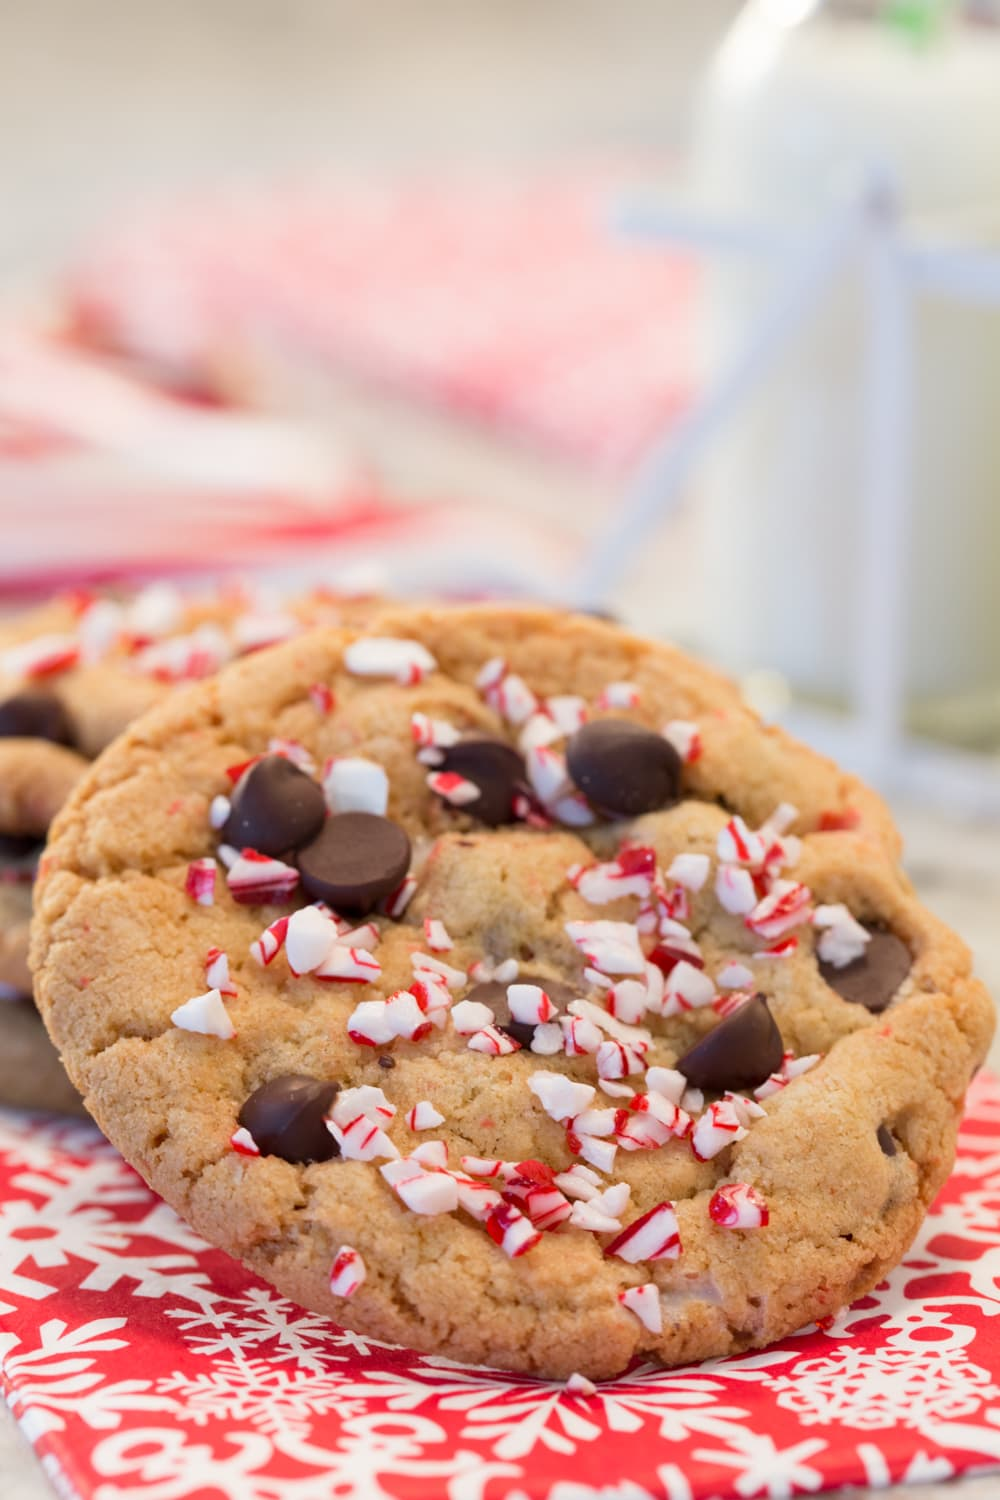 Close up picture of Candy Cane Chocolate Chip Cookies on a red and white napkin